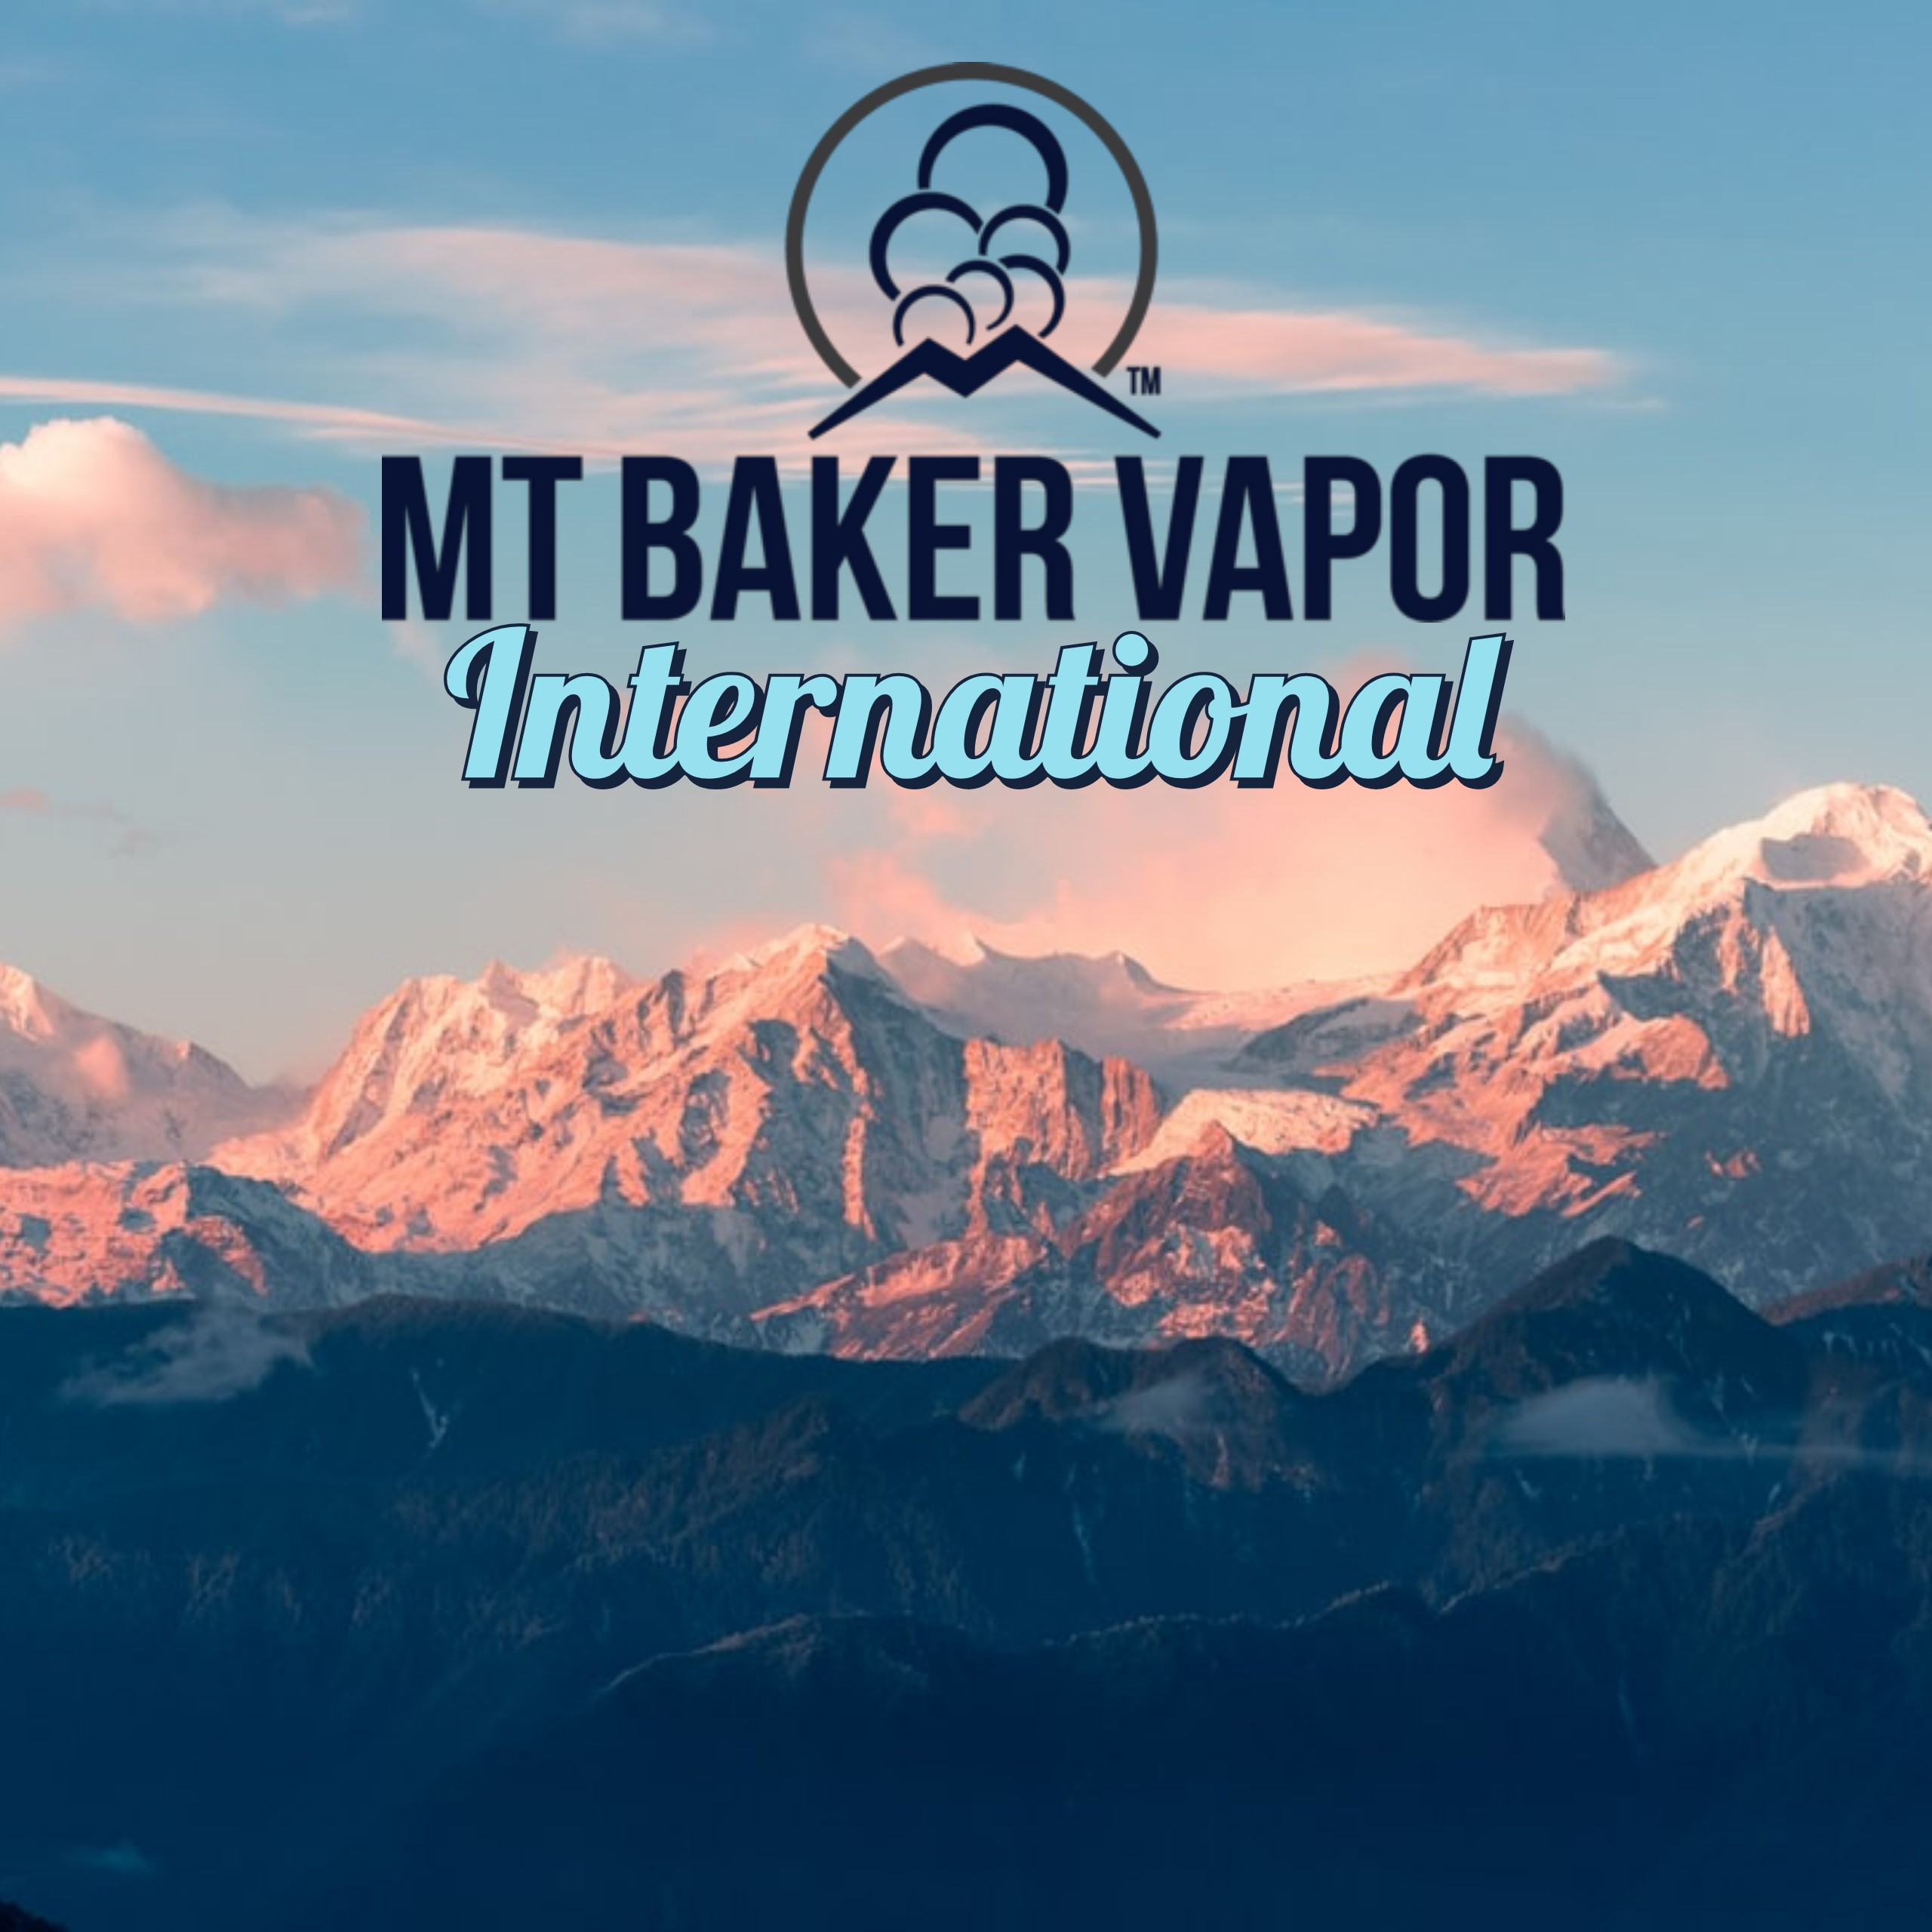 Mt Baker Vapor International Australia